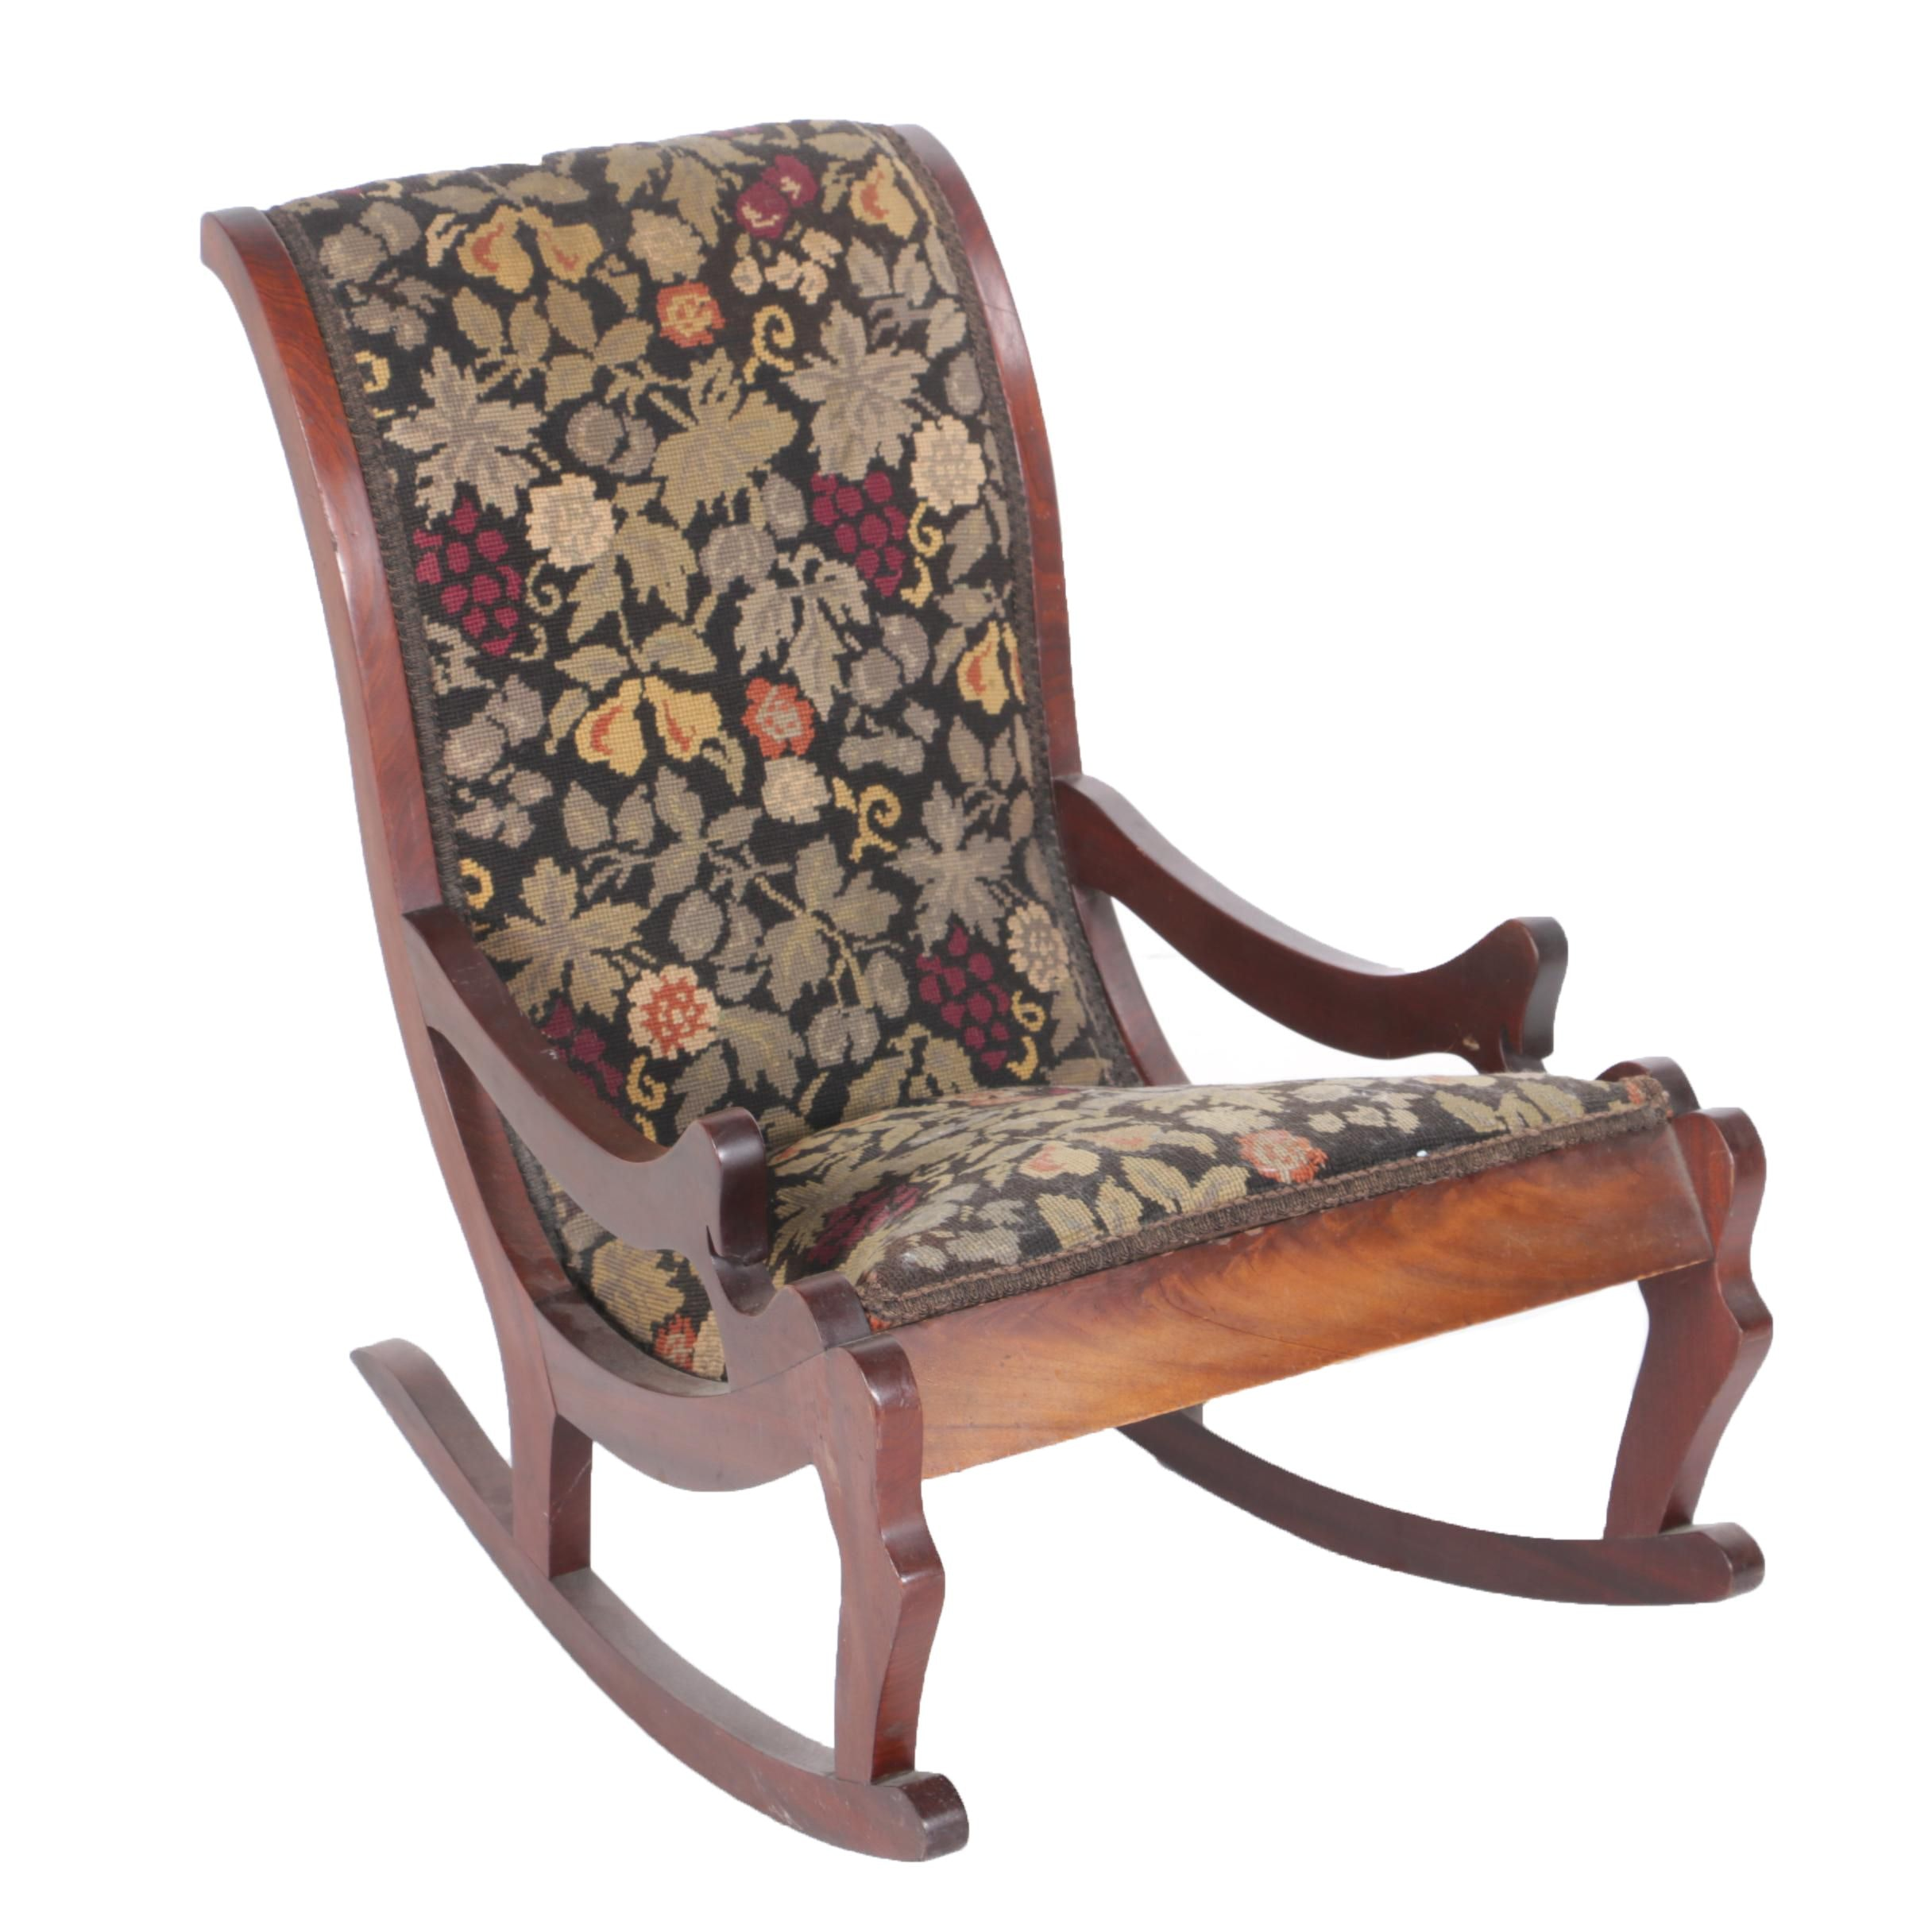 Vintage Mahogany Diminutive Rocking Chair With Tapestry Style Upholstery ...